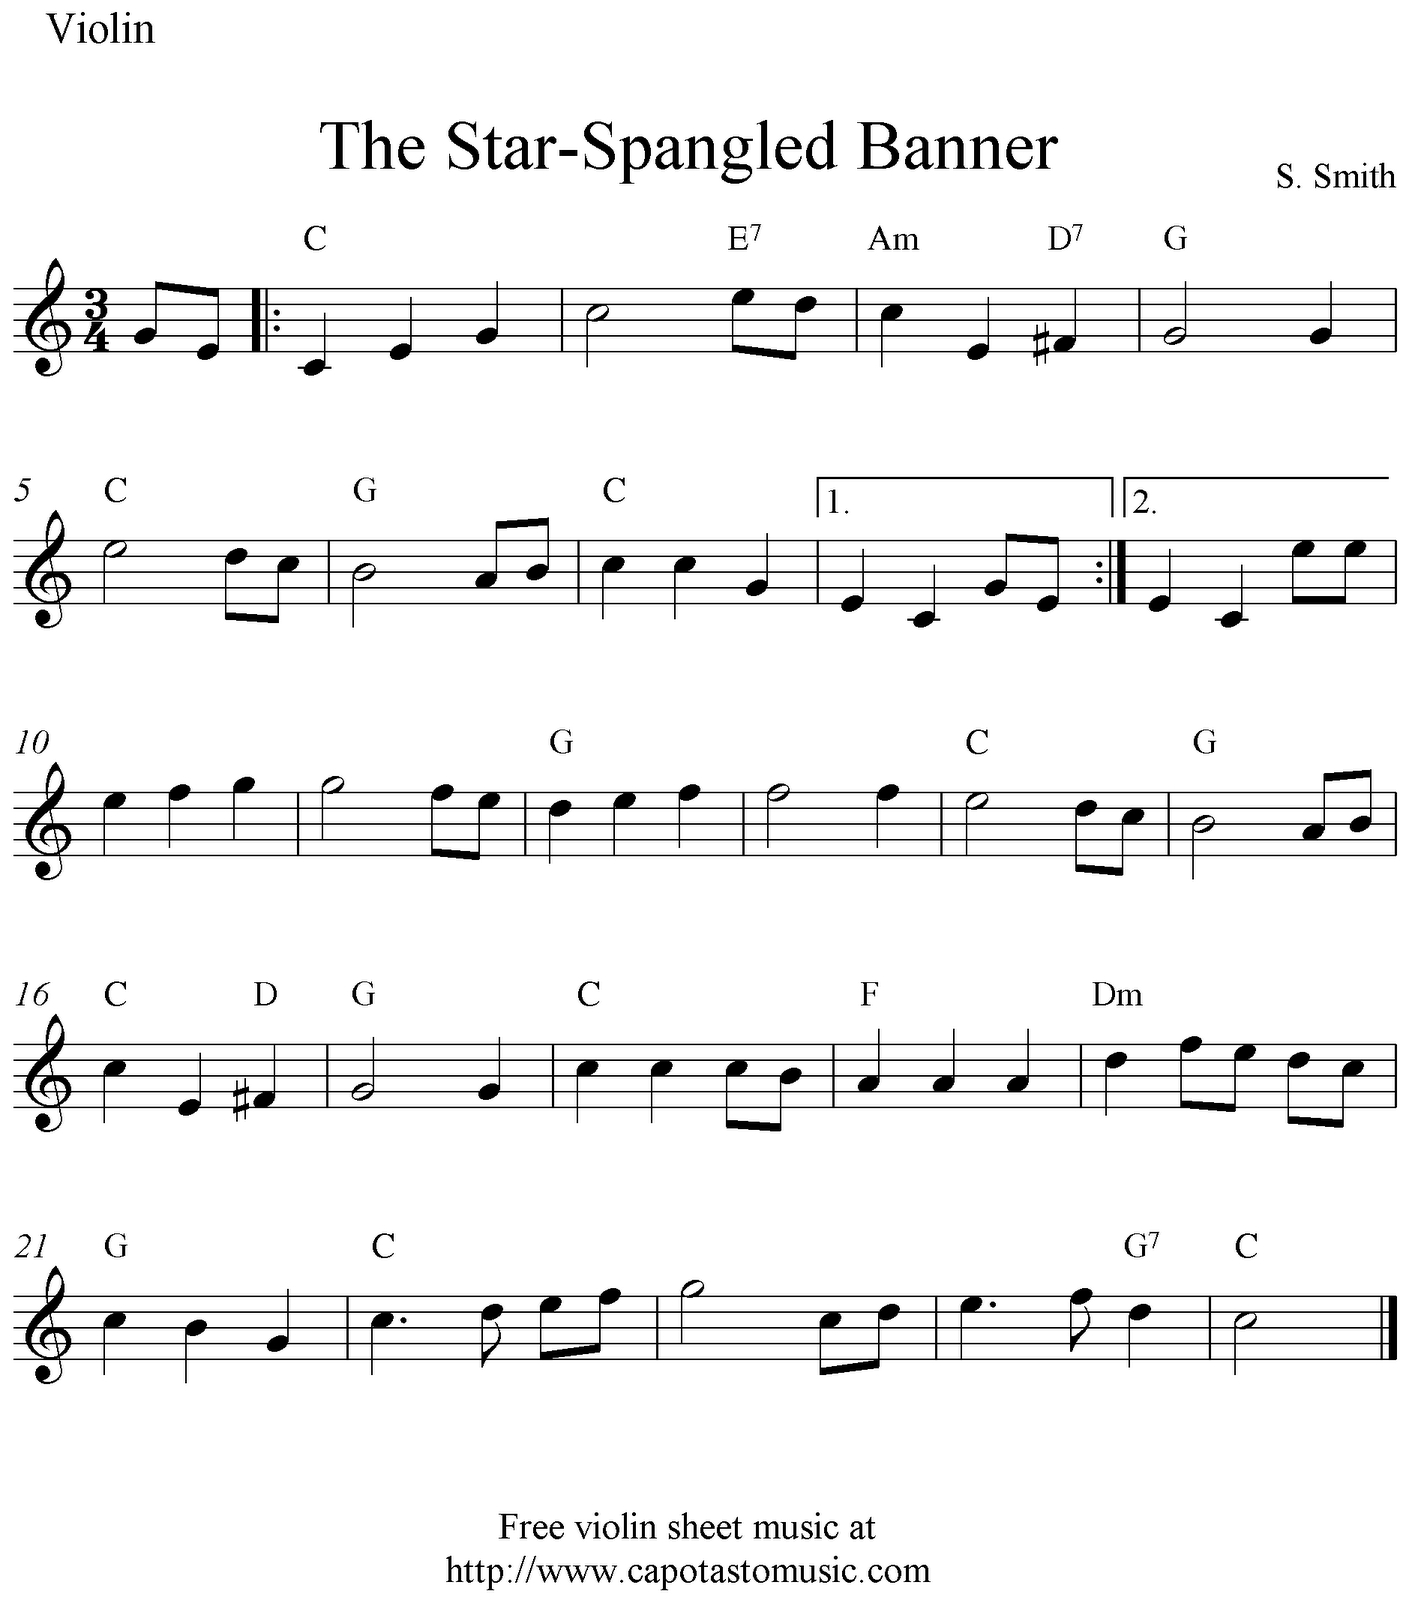 Sheet Music Violin | The Star-Spangled Banner, Free Easy Violin - Free Printable Piano Sheet Music For The Star Spangled Banner